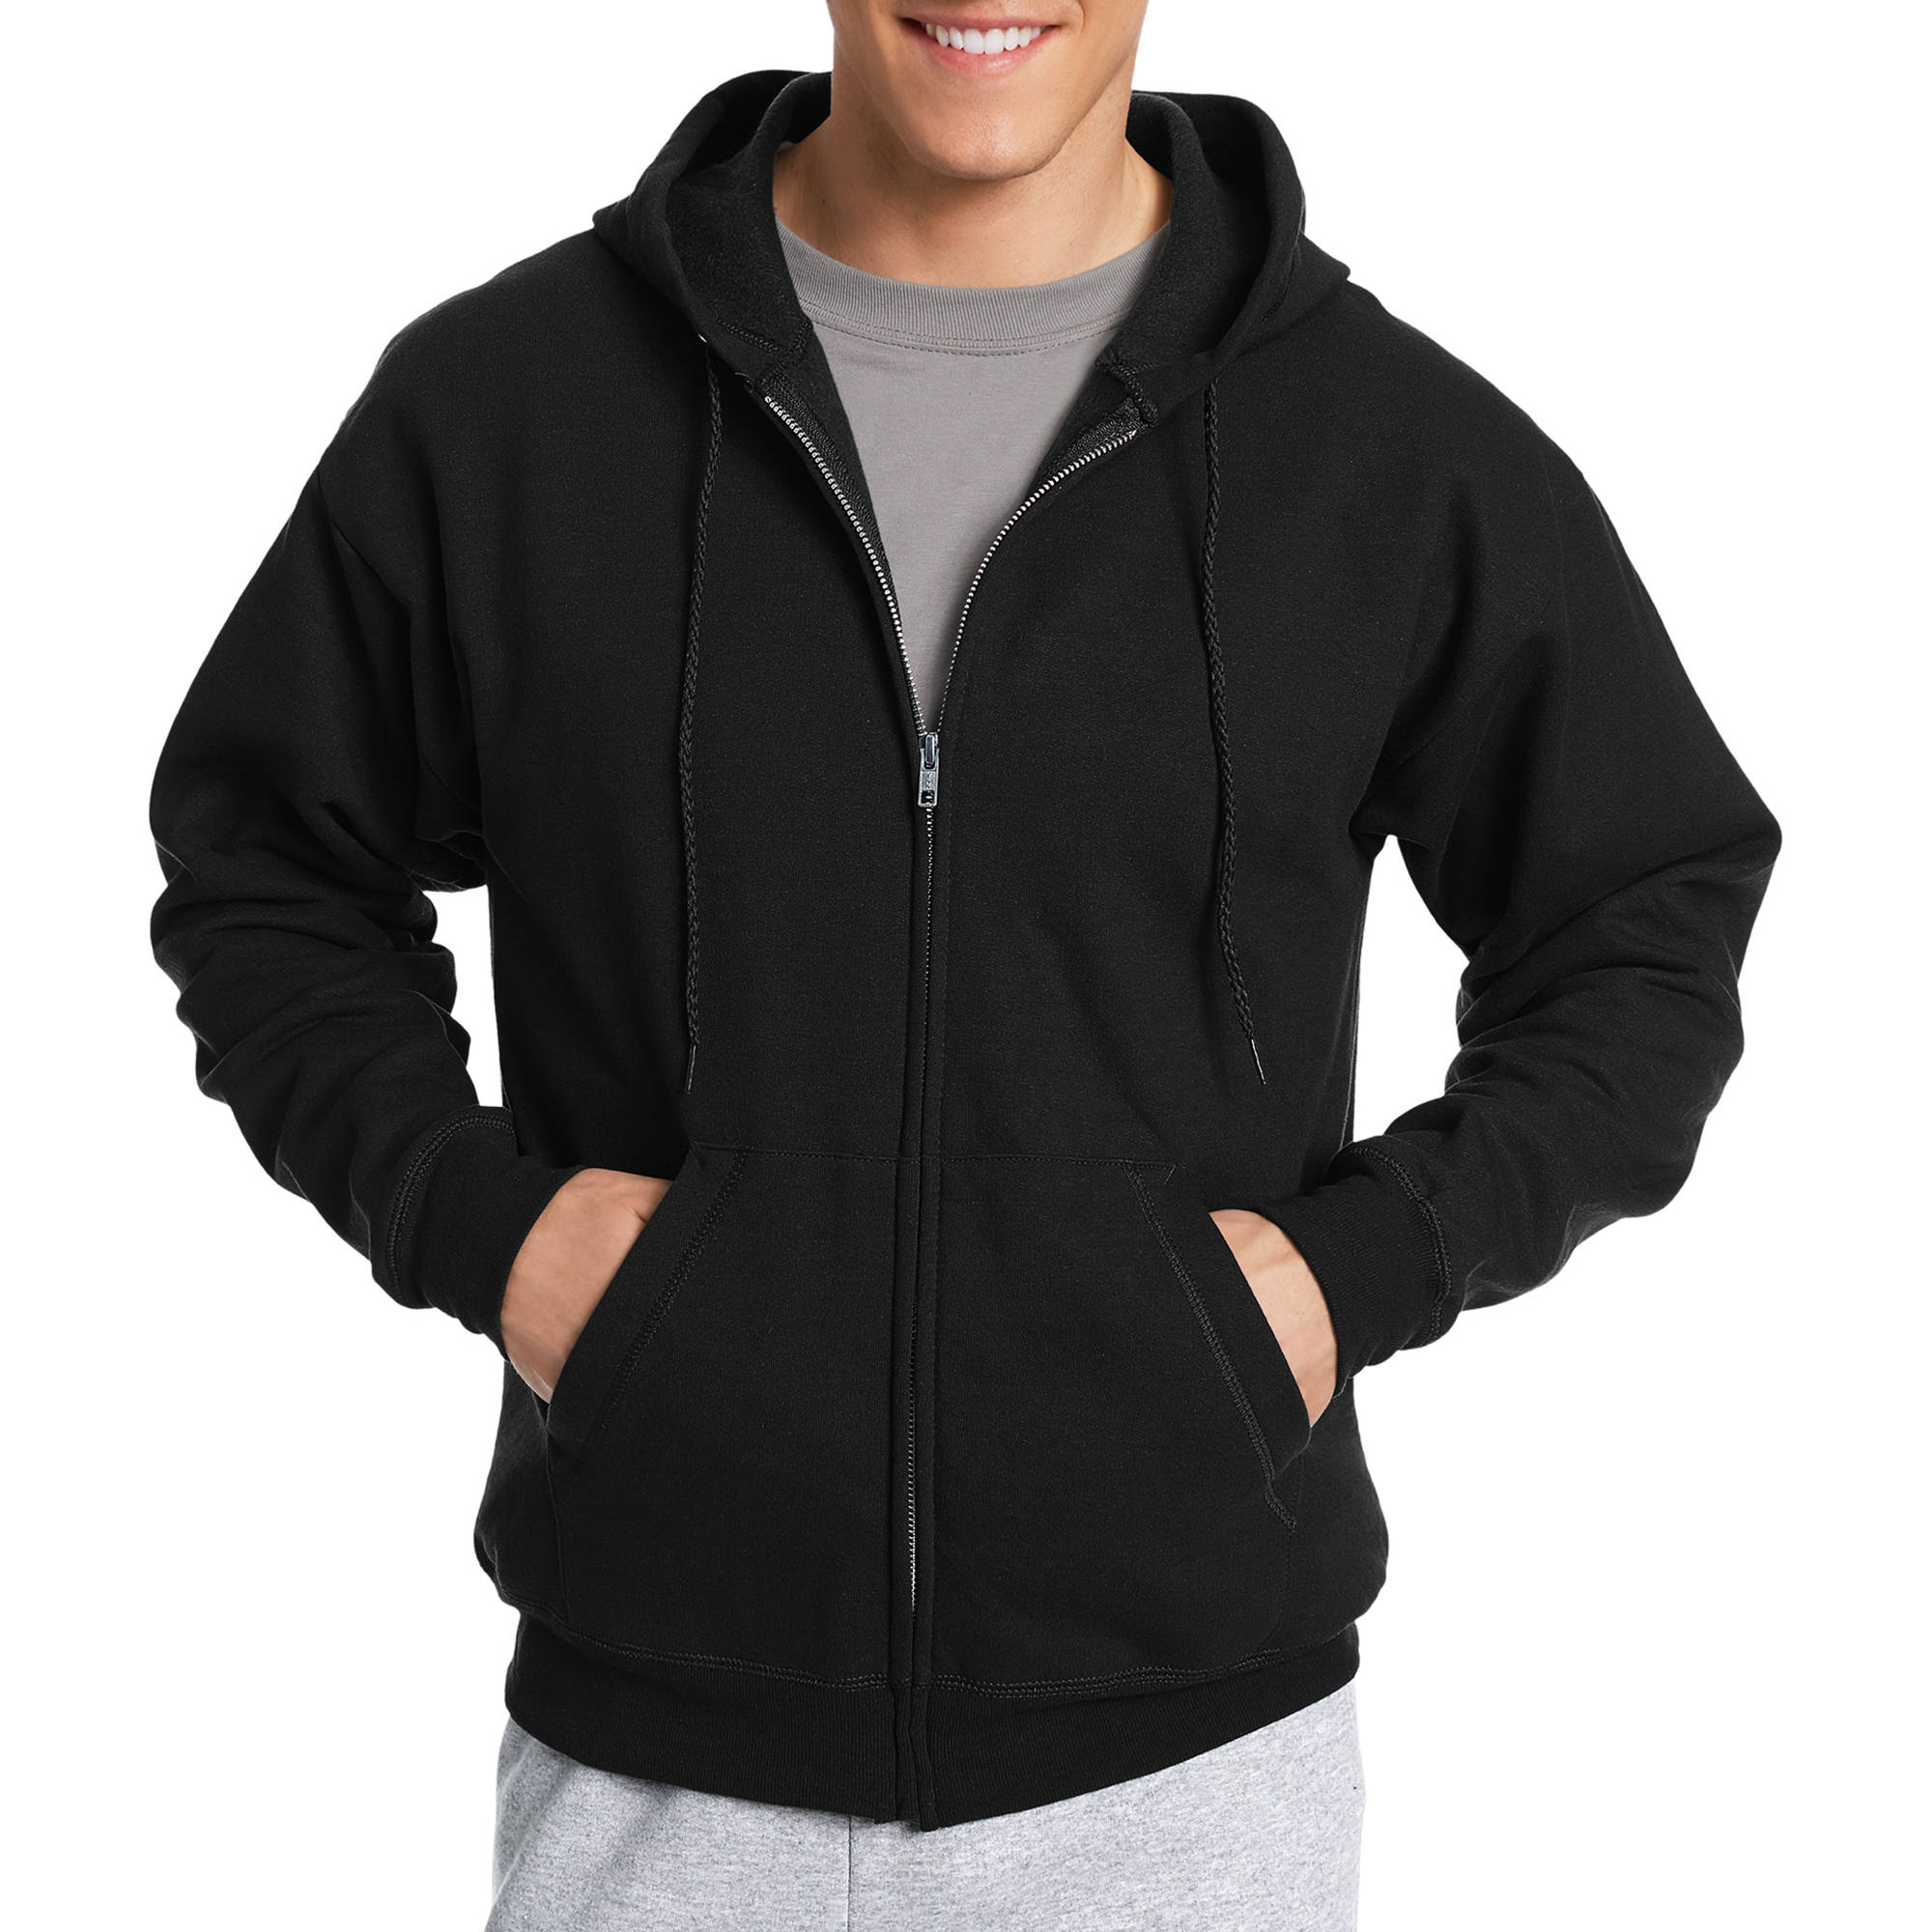 Hanes Men's EcoSmart Fleece Full Zip Hood